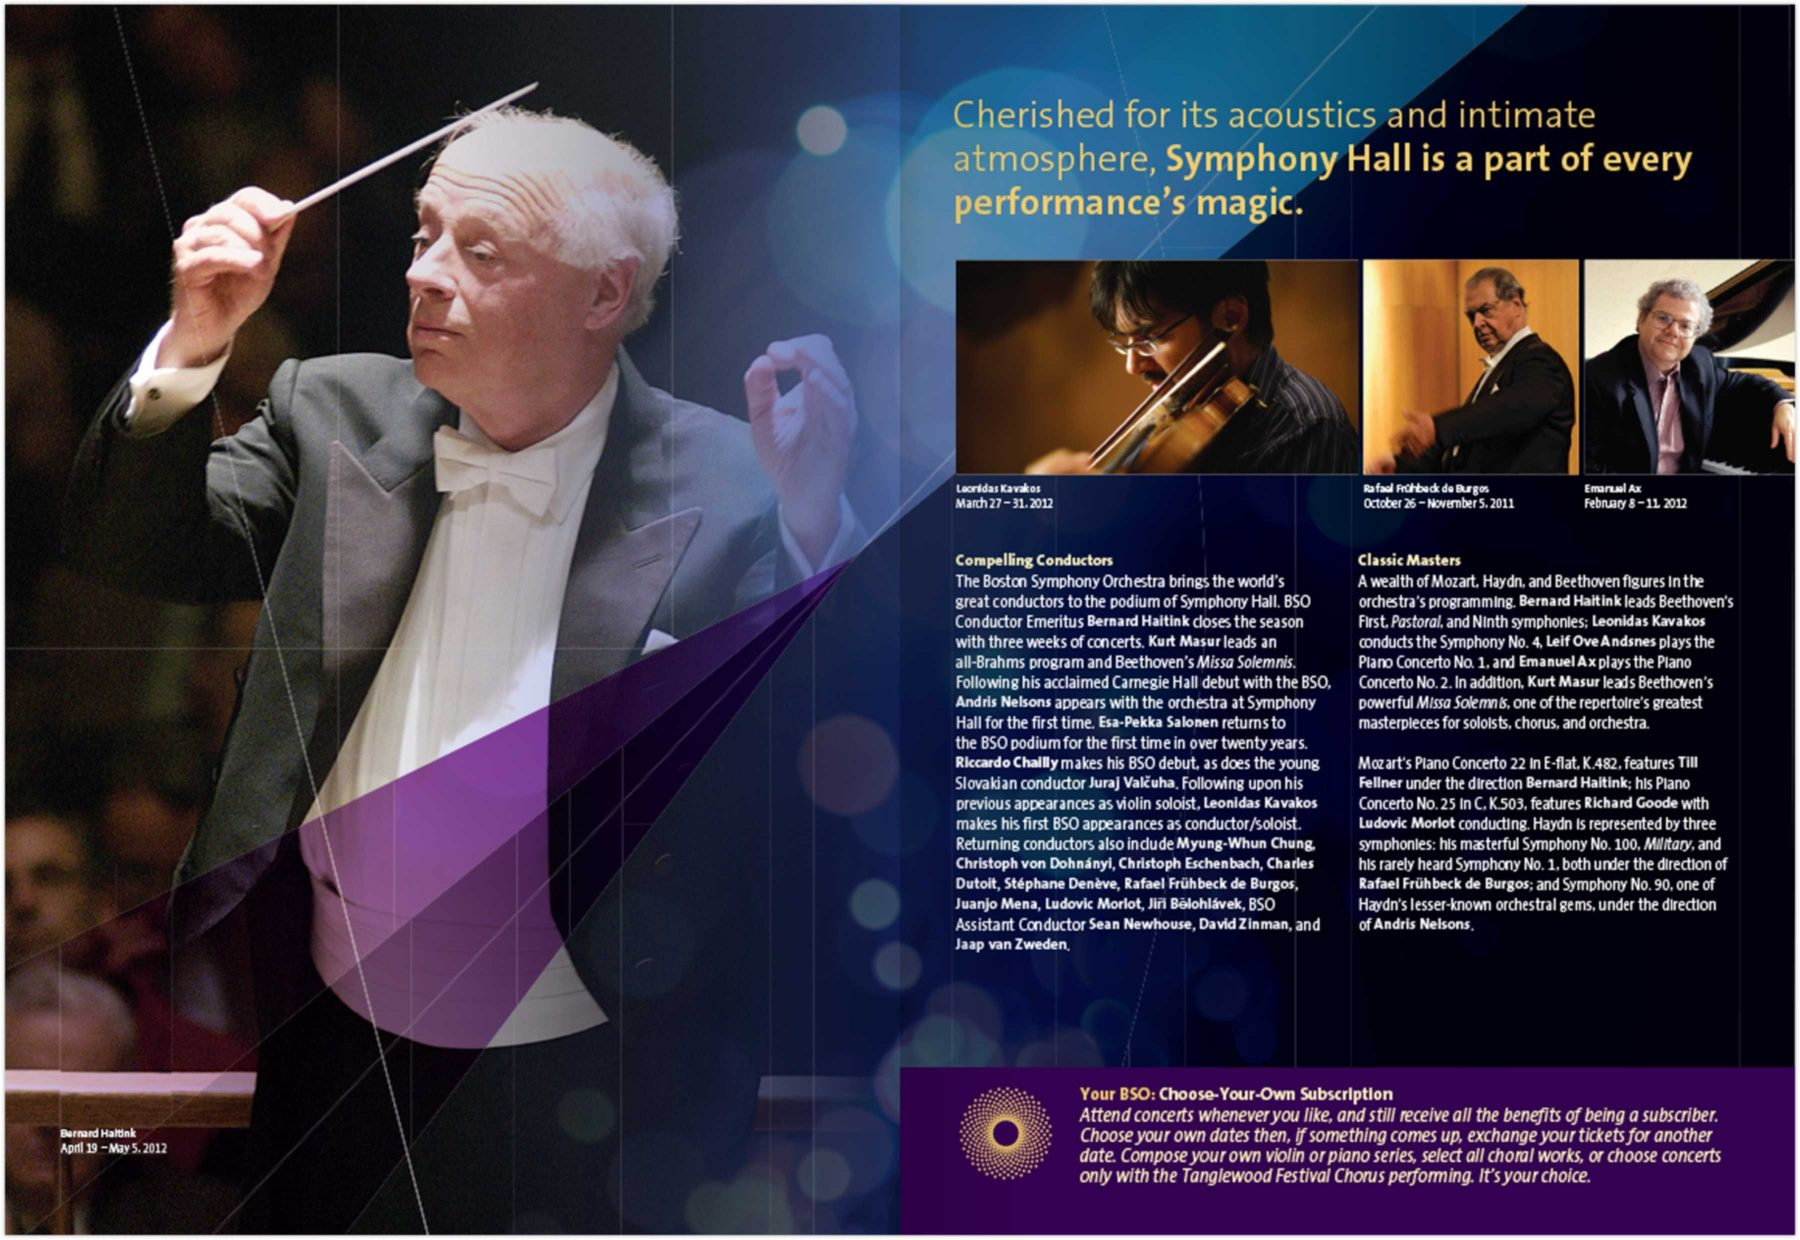 Brochure page: Cherished for its acoustics and intimate atmosphere, Symphony Hall is a part of every performance's magic